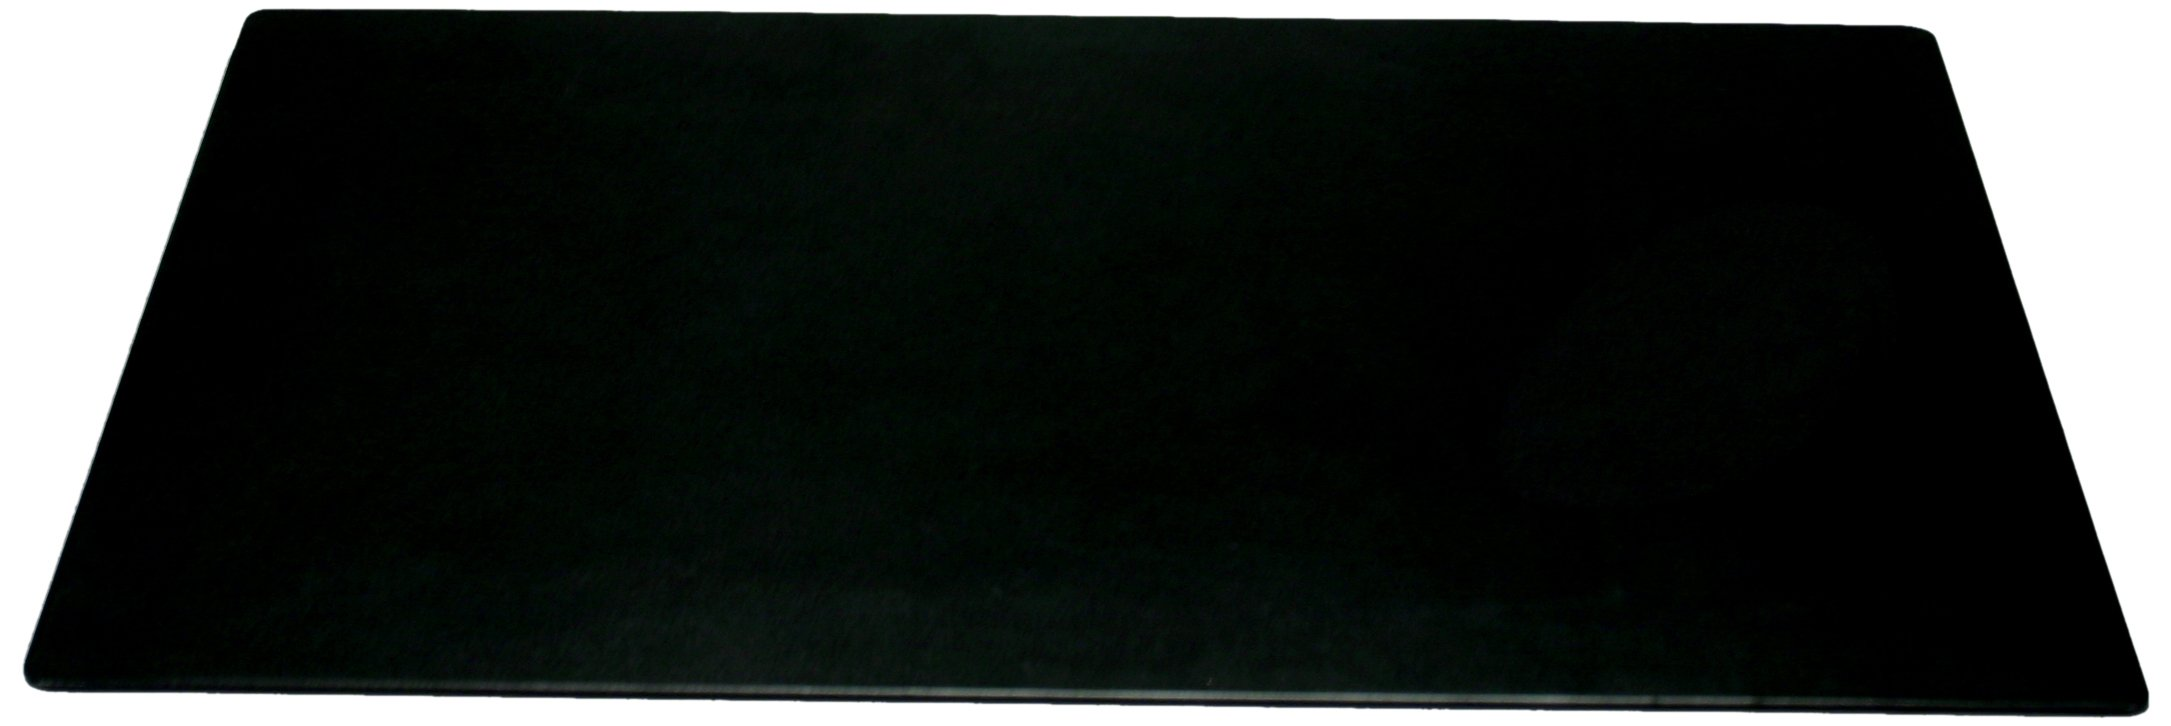 Dacasso Black Leather Desk Mat, 30-Inch by 19-Inch